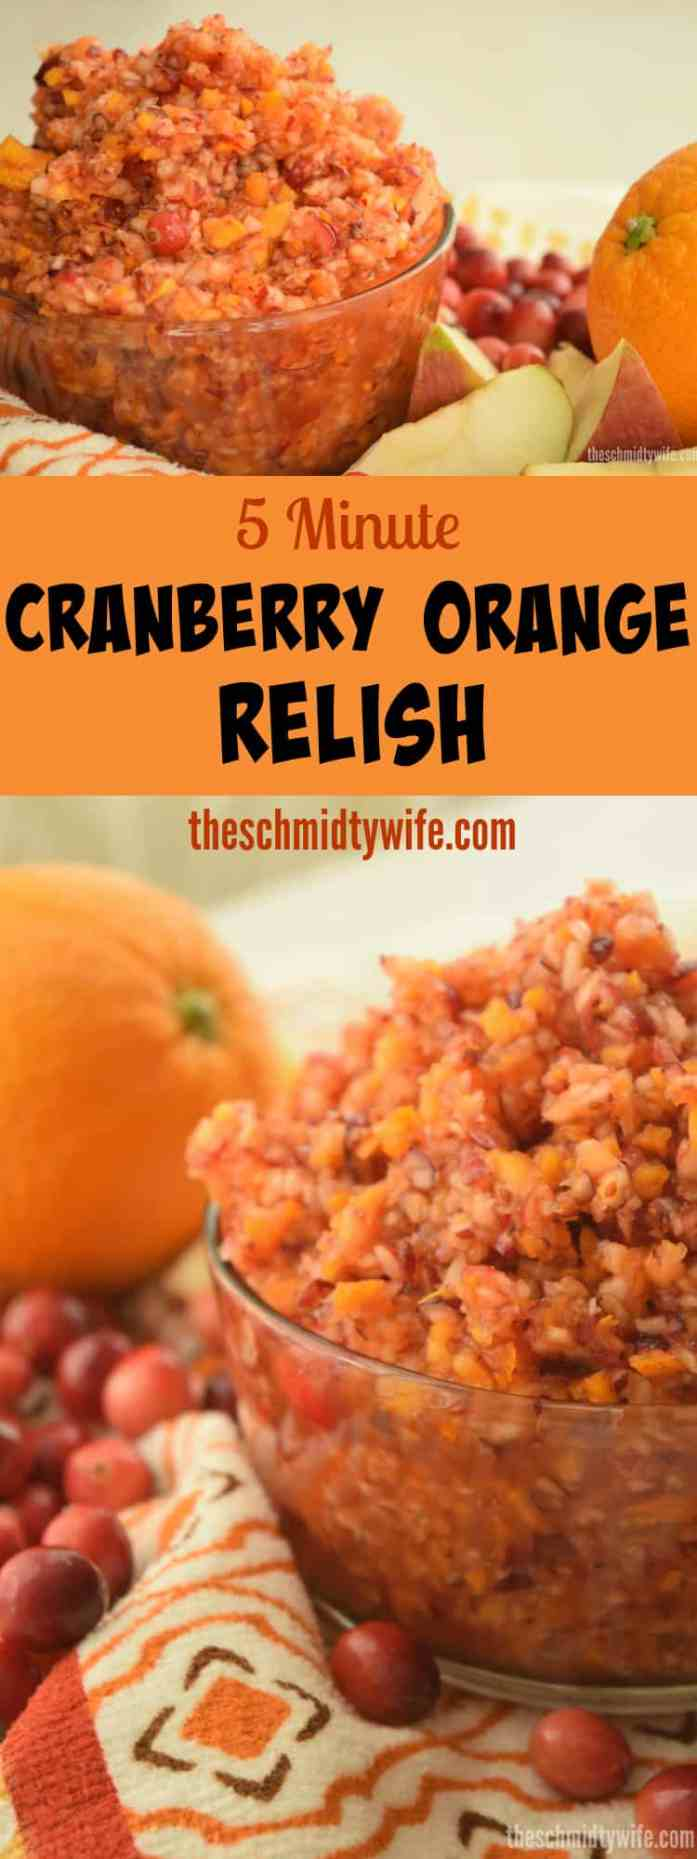 5 Minute Cranberry Orange Relish